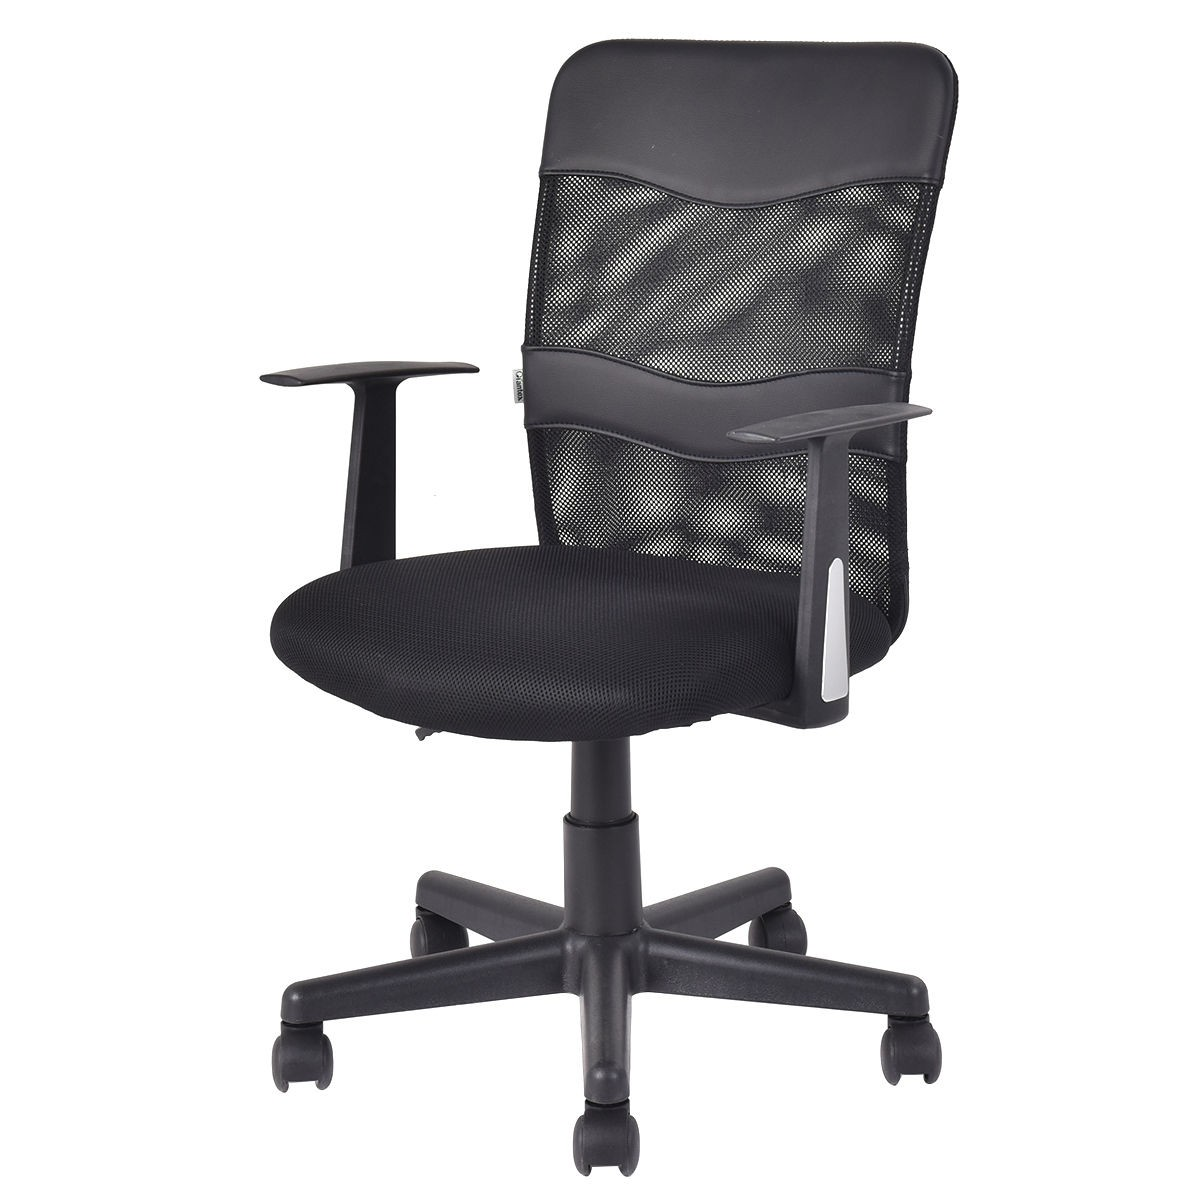 Ergonomic Reading Chair Modern Ergonomic Mesh Executive Mid Back Computer Desk